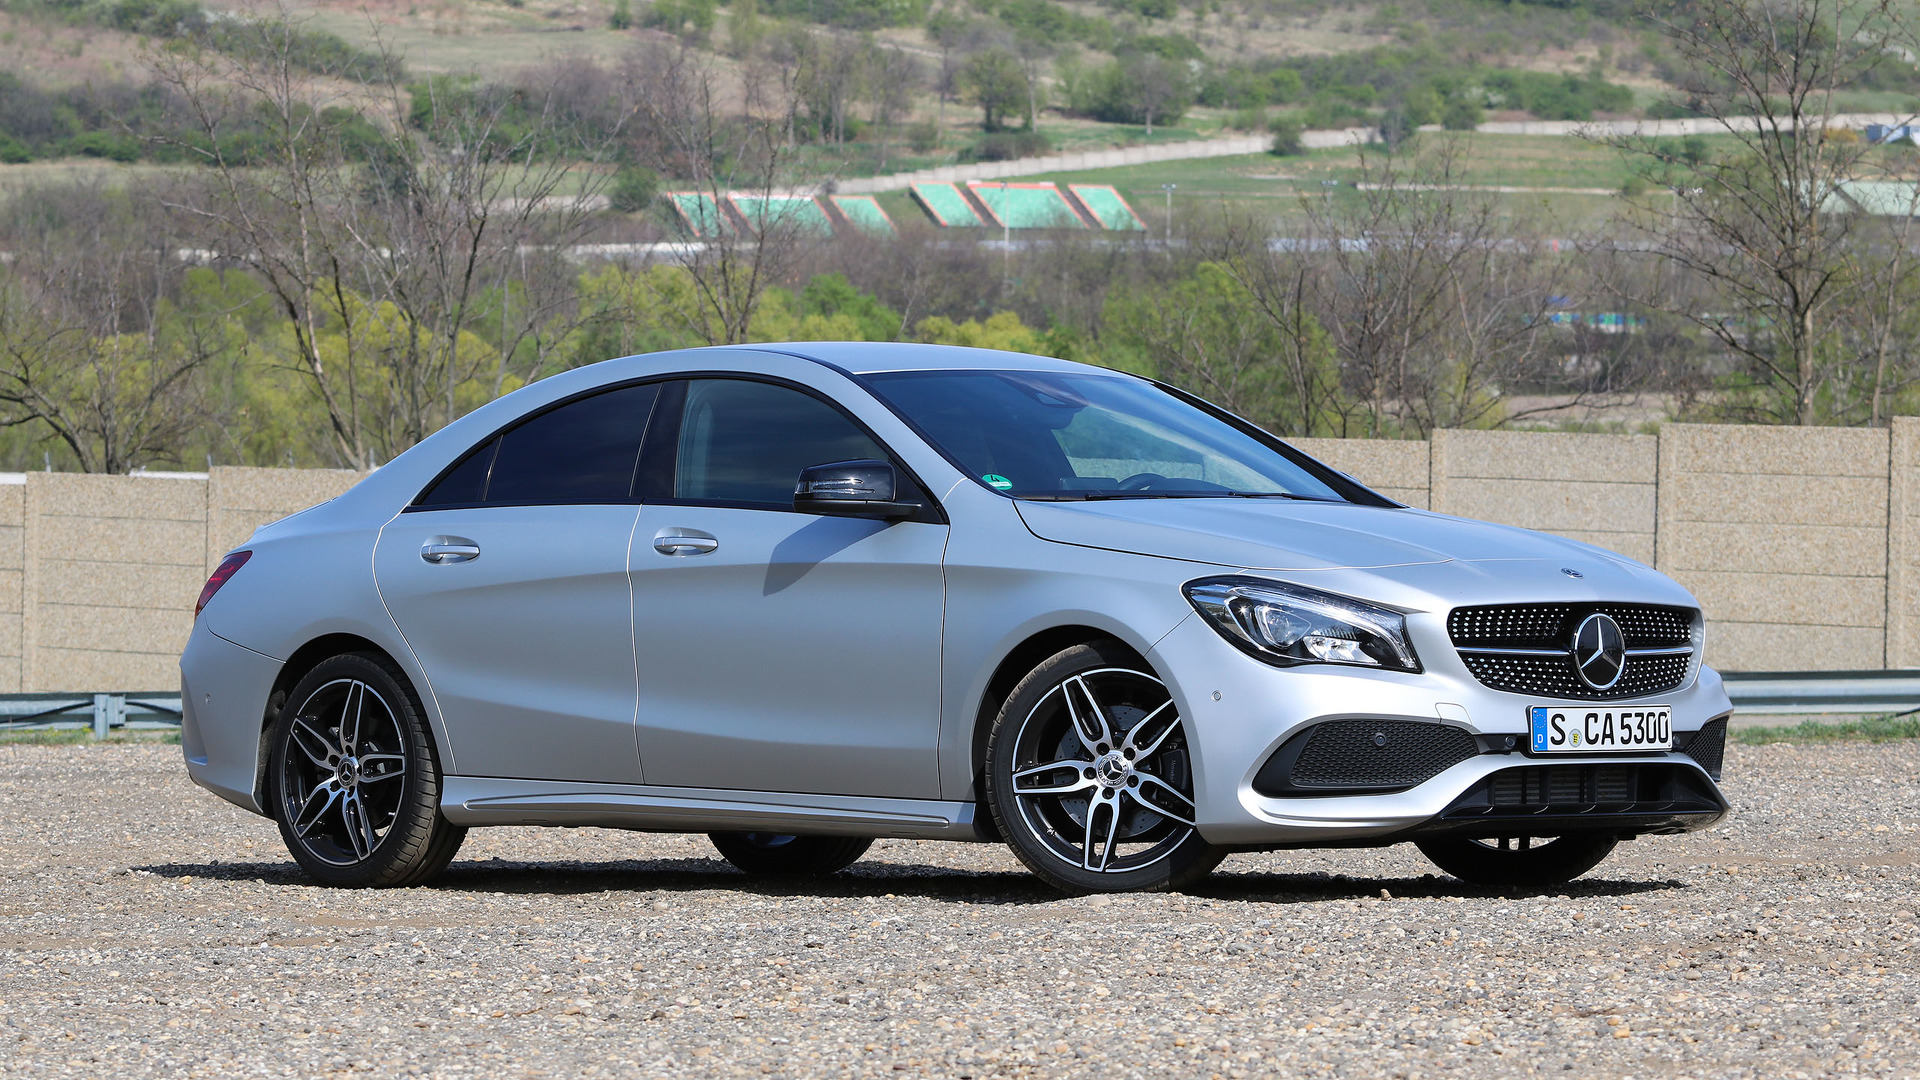 What are some features of the Mercedes Benz CLA250?